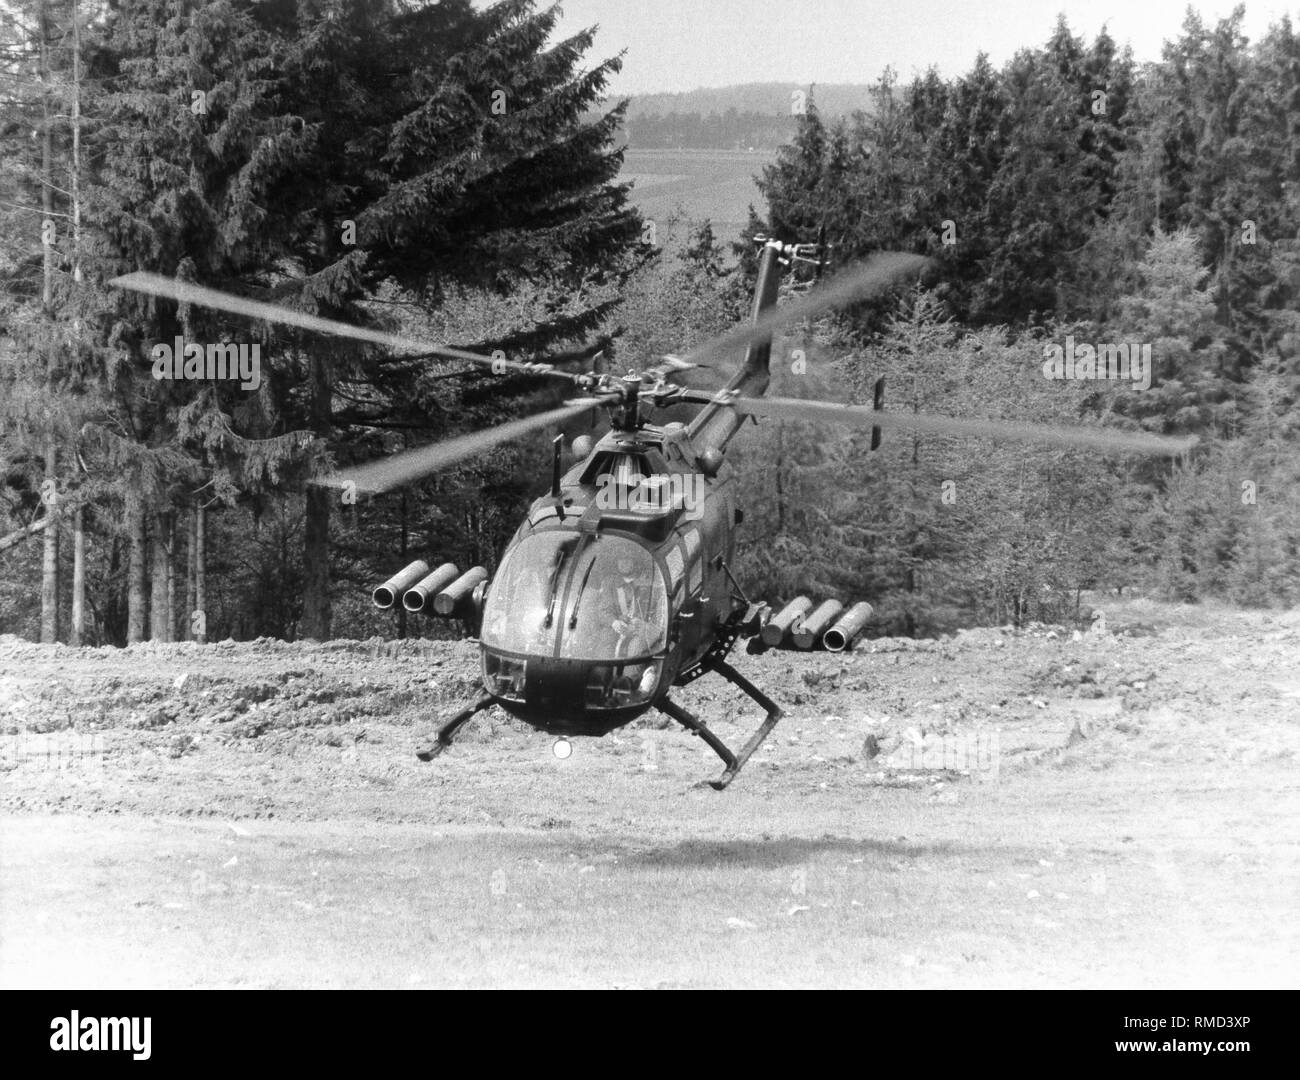 The helicopter Boelkoew Blohm Bo 105, armed with HOT antitank missiles. - Stock Image